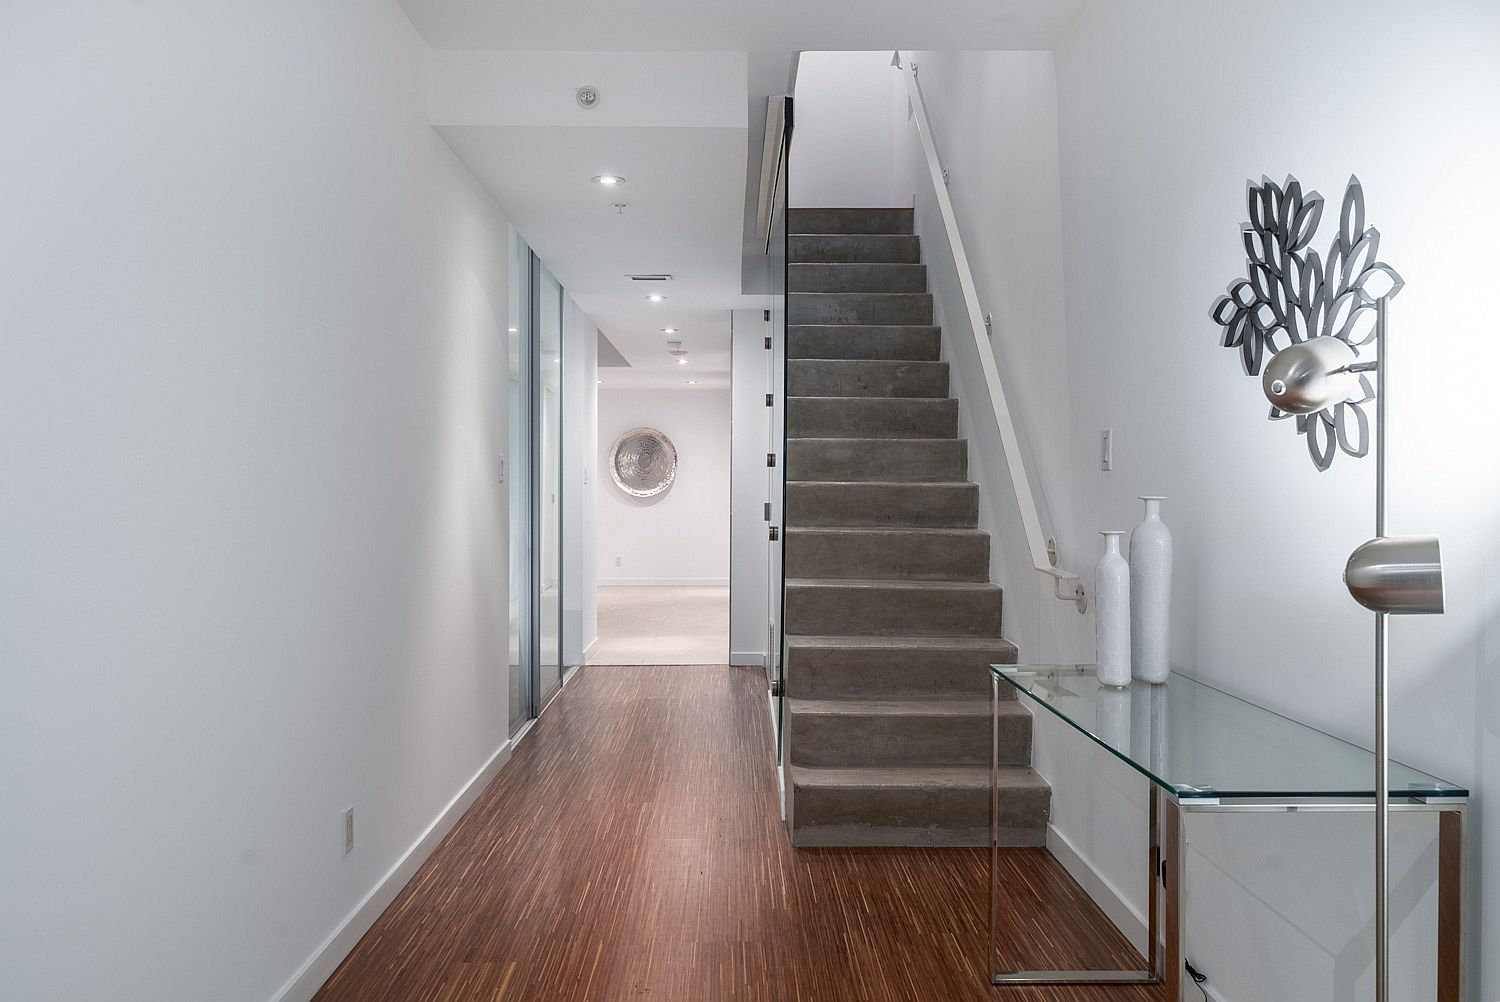 Concrete stairway with glass frame railing inside the Vancouver loft